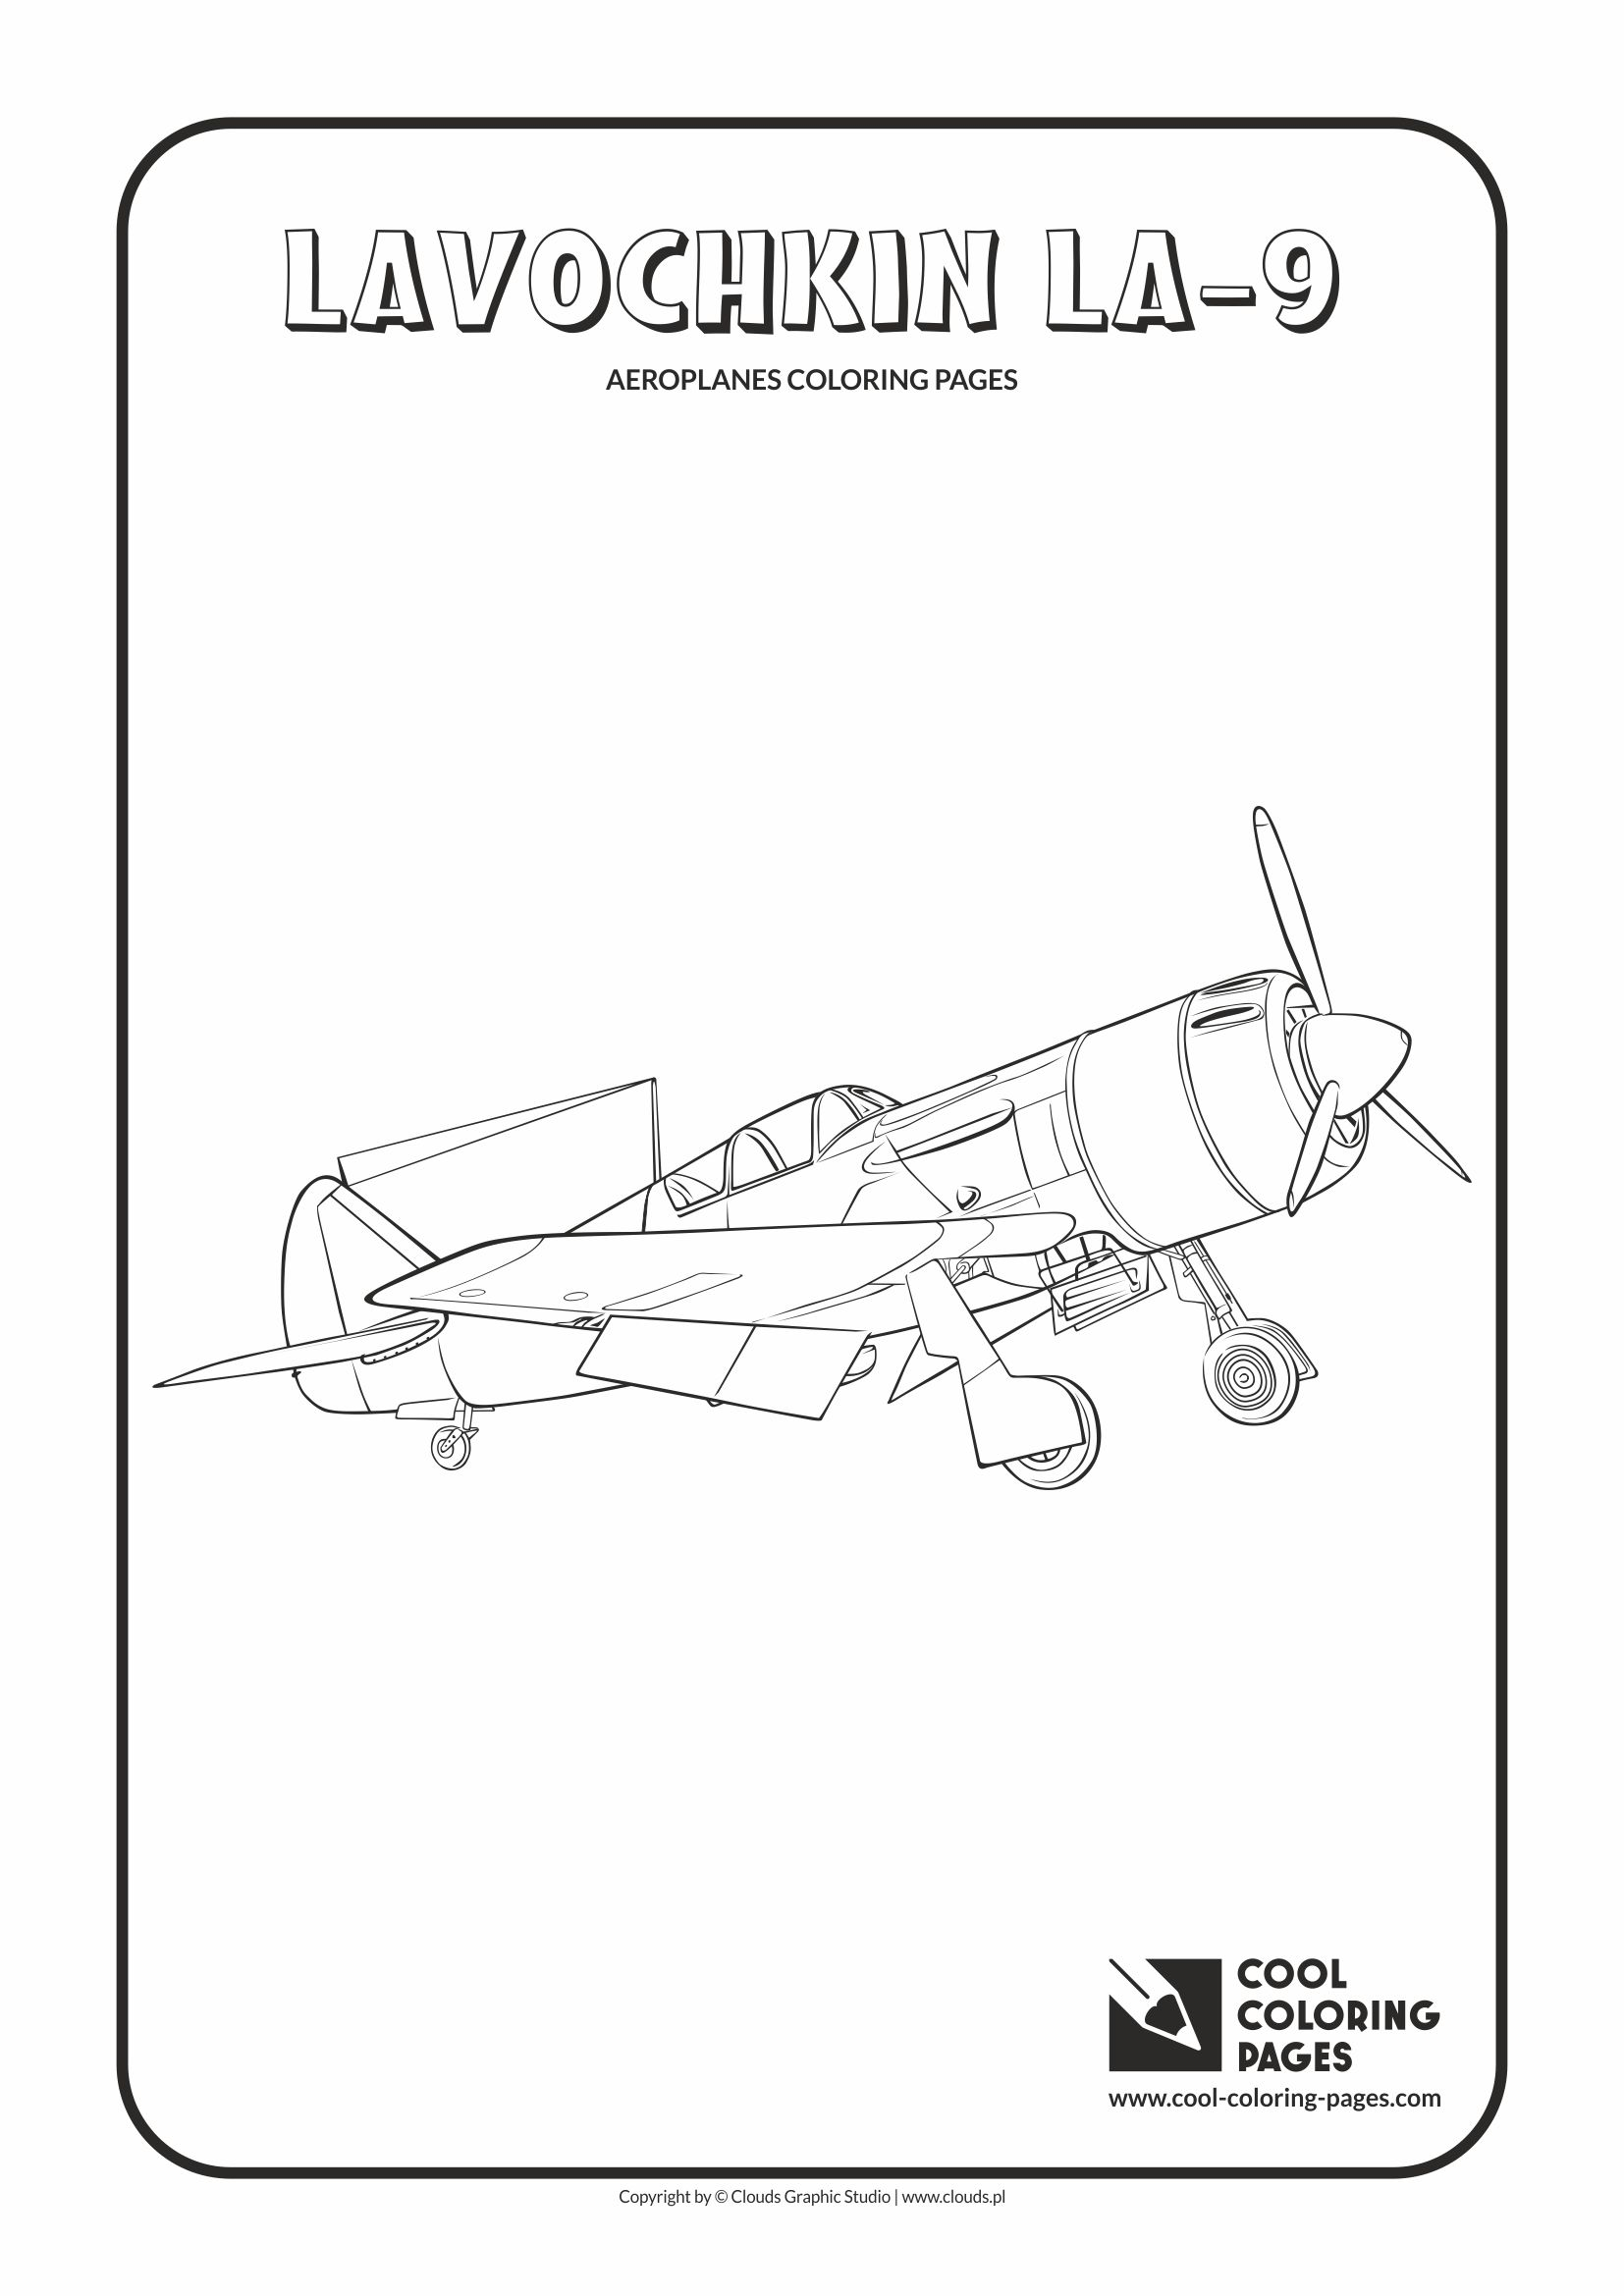 Cool Coloring Pages - Vehicles / Lavochkin La-9 / Coloring page with Lavochkin La-9